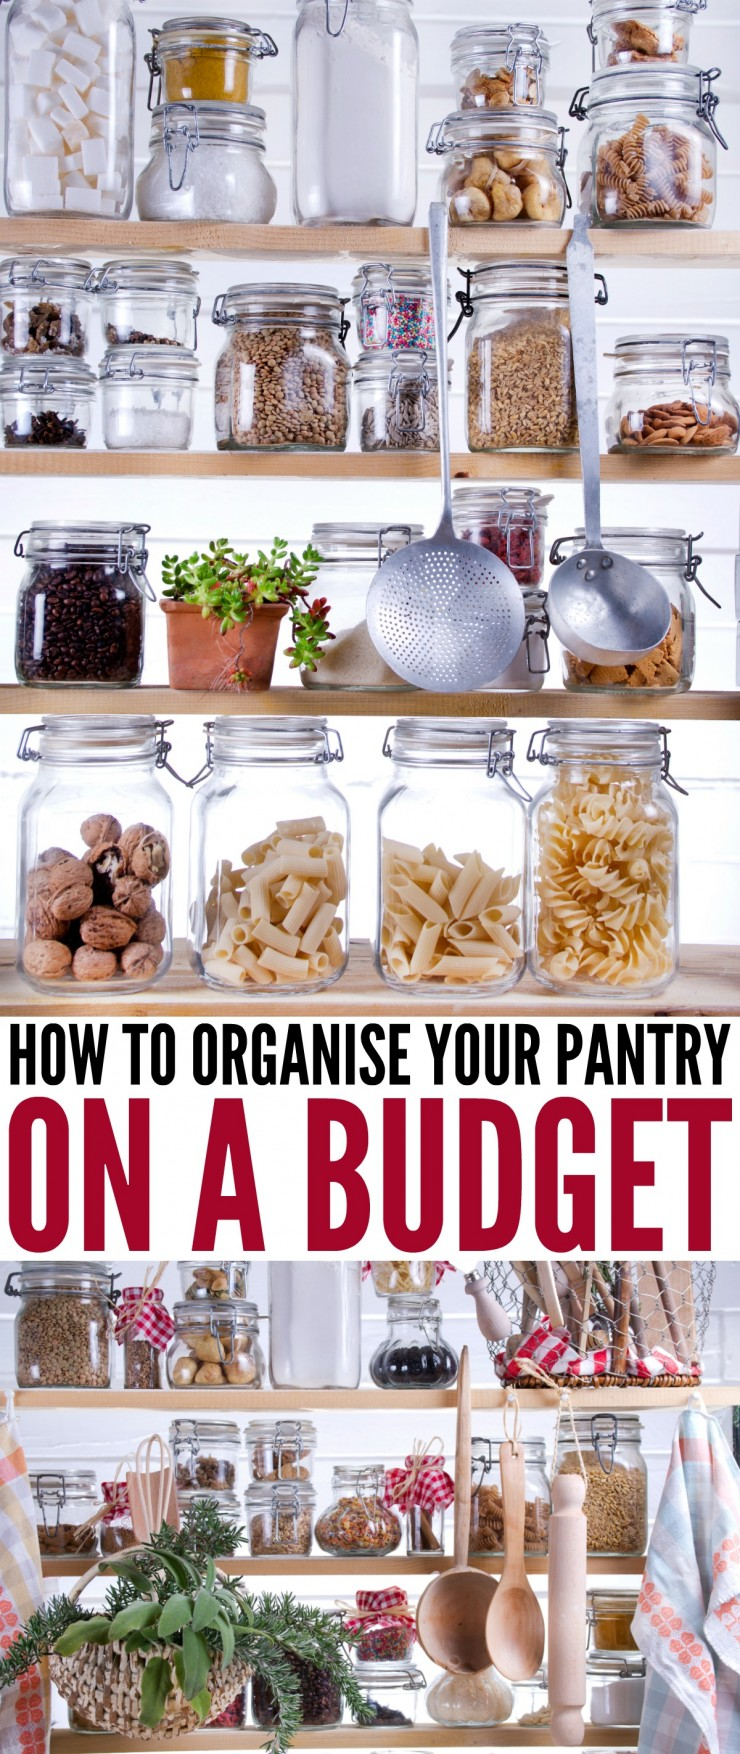 A pantry can be a crucial part to any kitchen. The truth is, it is meant to add organization, storage options and ease of access to the place you make meal magic happen. Here is how to Organize your Pantry on a Budget.